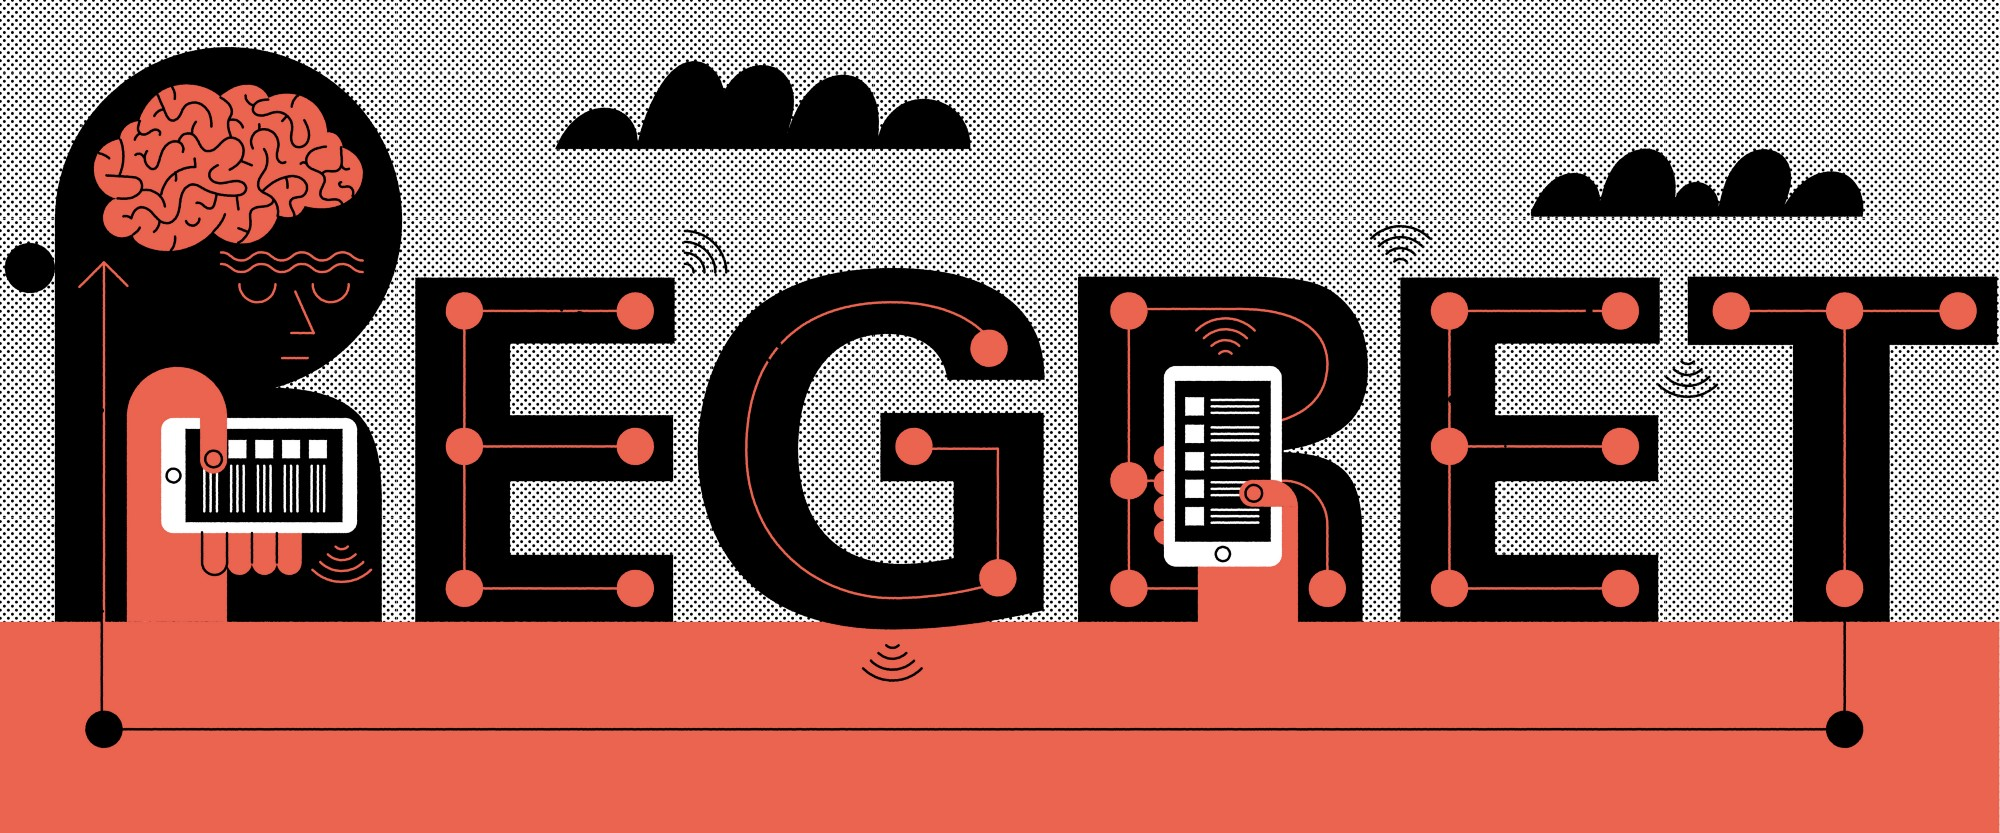 An illustration by John Devolle that says 'Regret' with a human on a mobile device